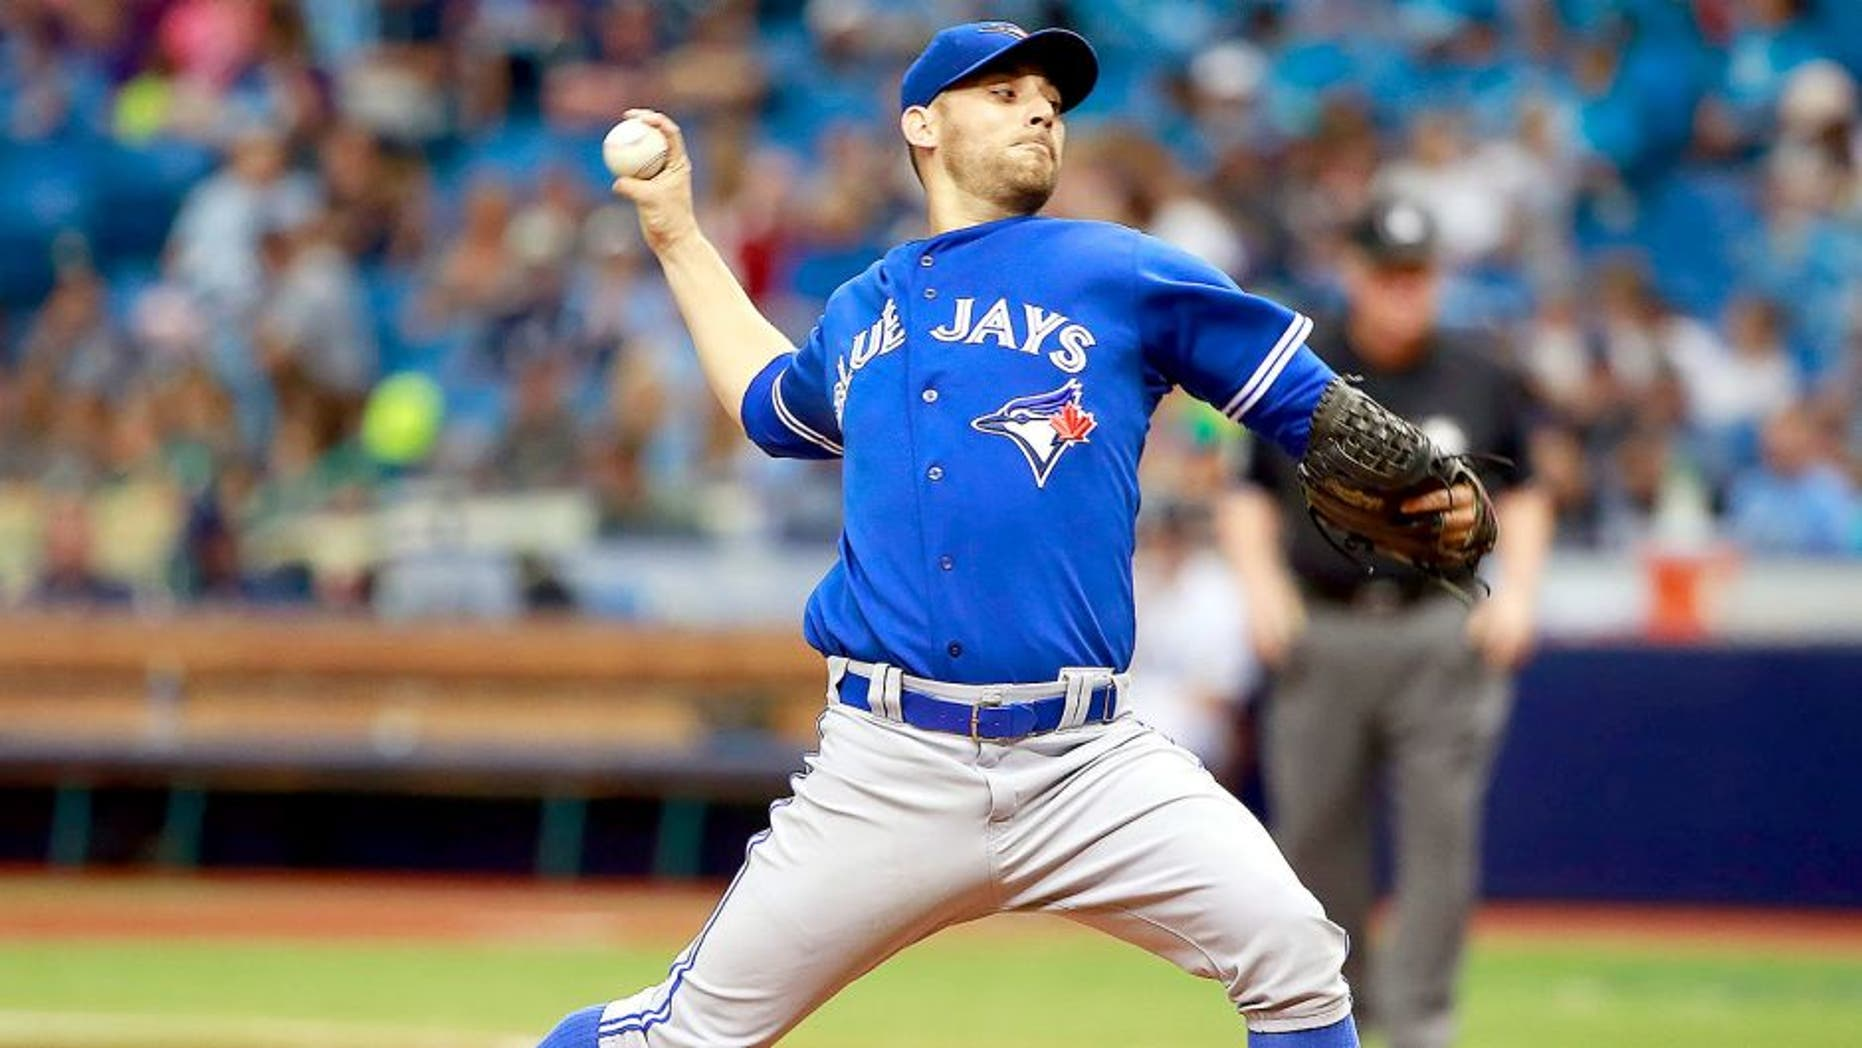 Jun 24, 2015; St. Petersburg, FL, USA; Toronto Blue Jays relief pitcher Marco Estrada (25) throws a pitch during the third inning against the Tampa Bay Rays at Tropicana Field. Mandatory Credit: Kim Klement-USA TODAY Sports